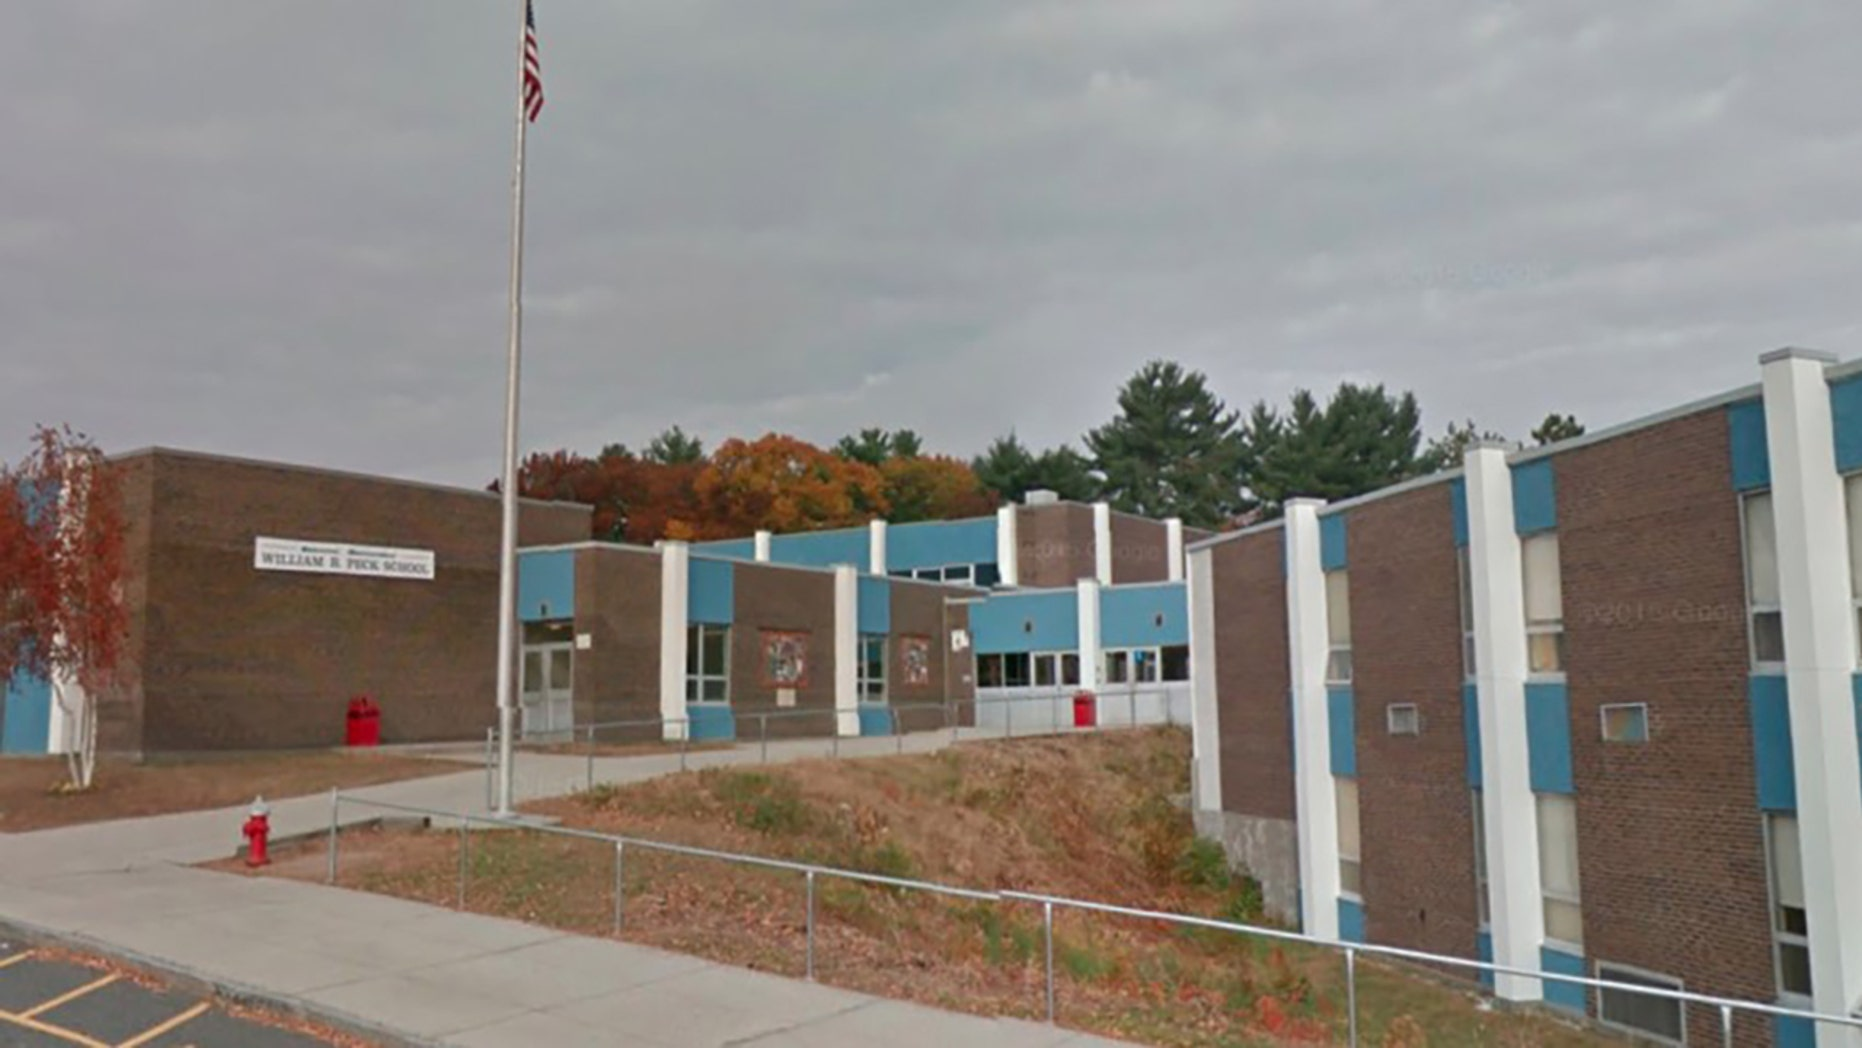 An 11-year-old student was arrested after allegedly attacking a teacher with a screwdriver during class Wednesday, police said.